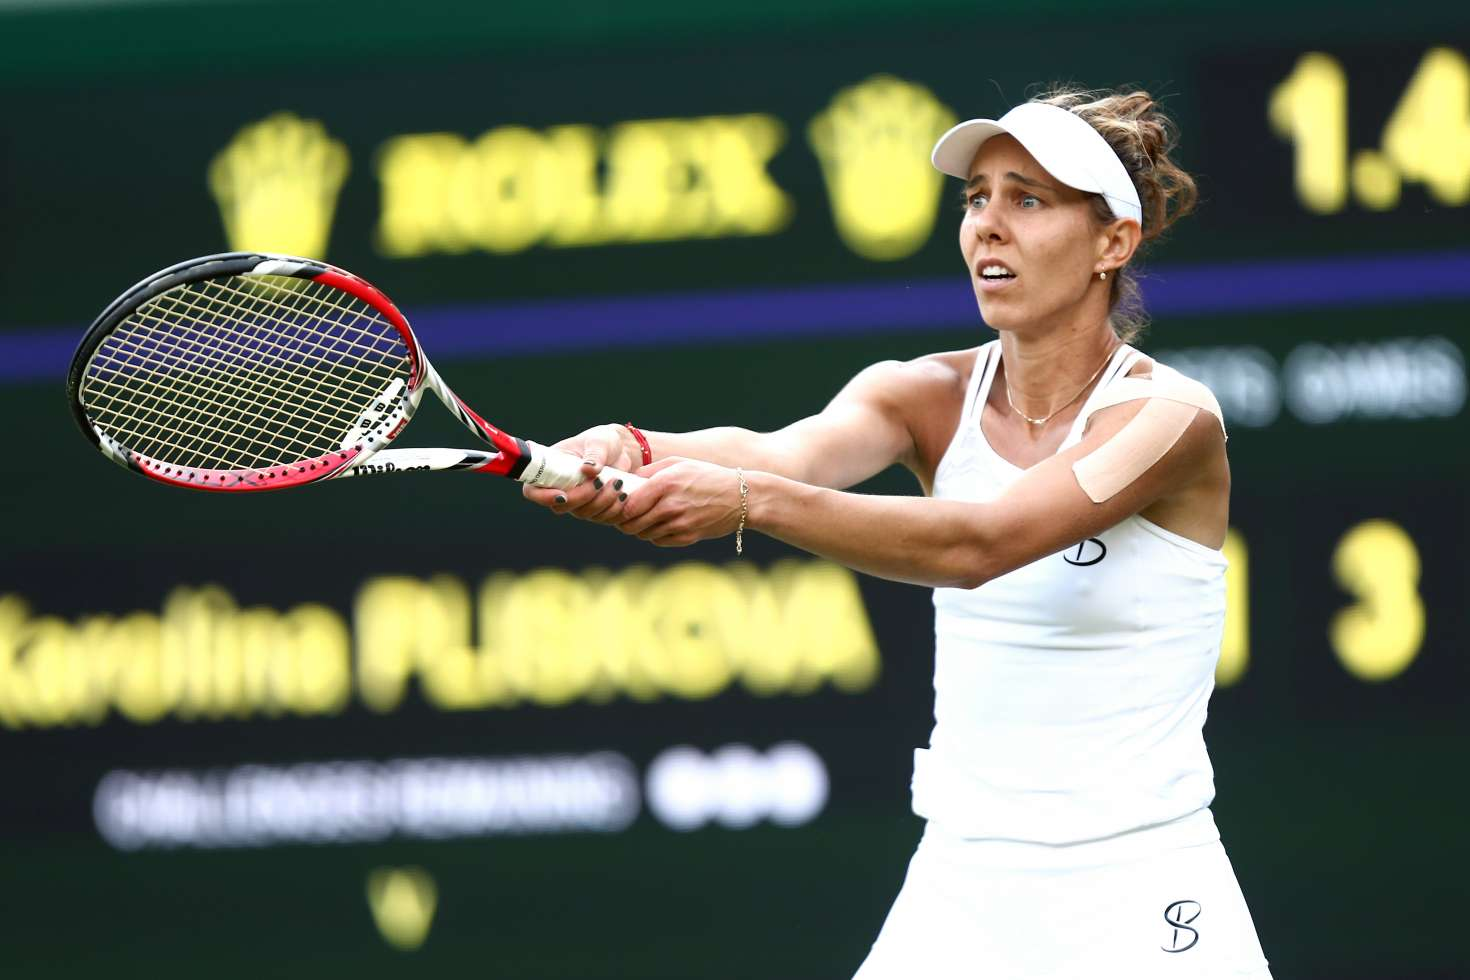 Mihaela Buzarnescu - 2018 Wimbledon Tennis Championships in London Day 5